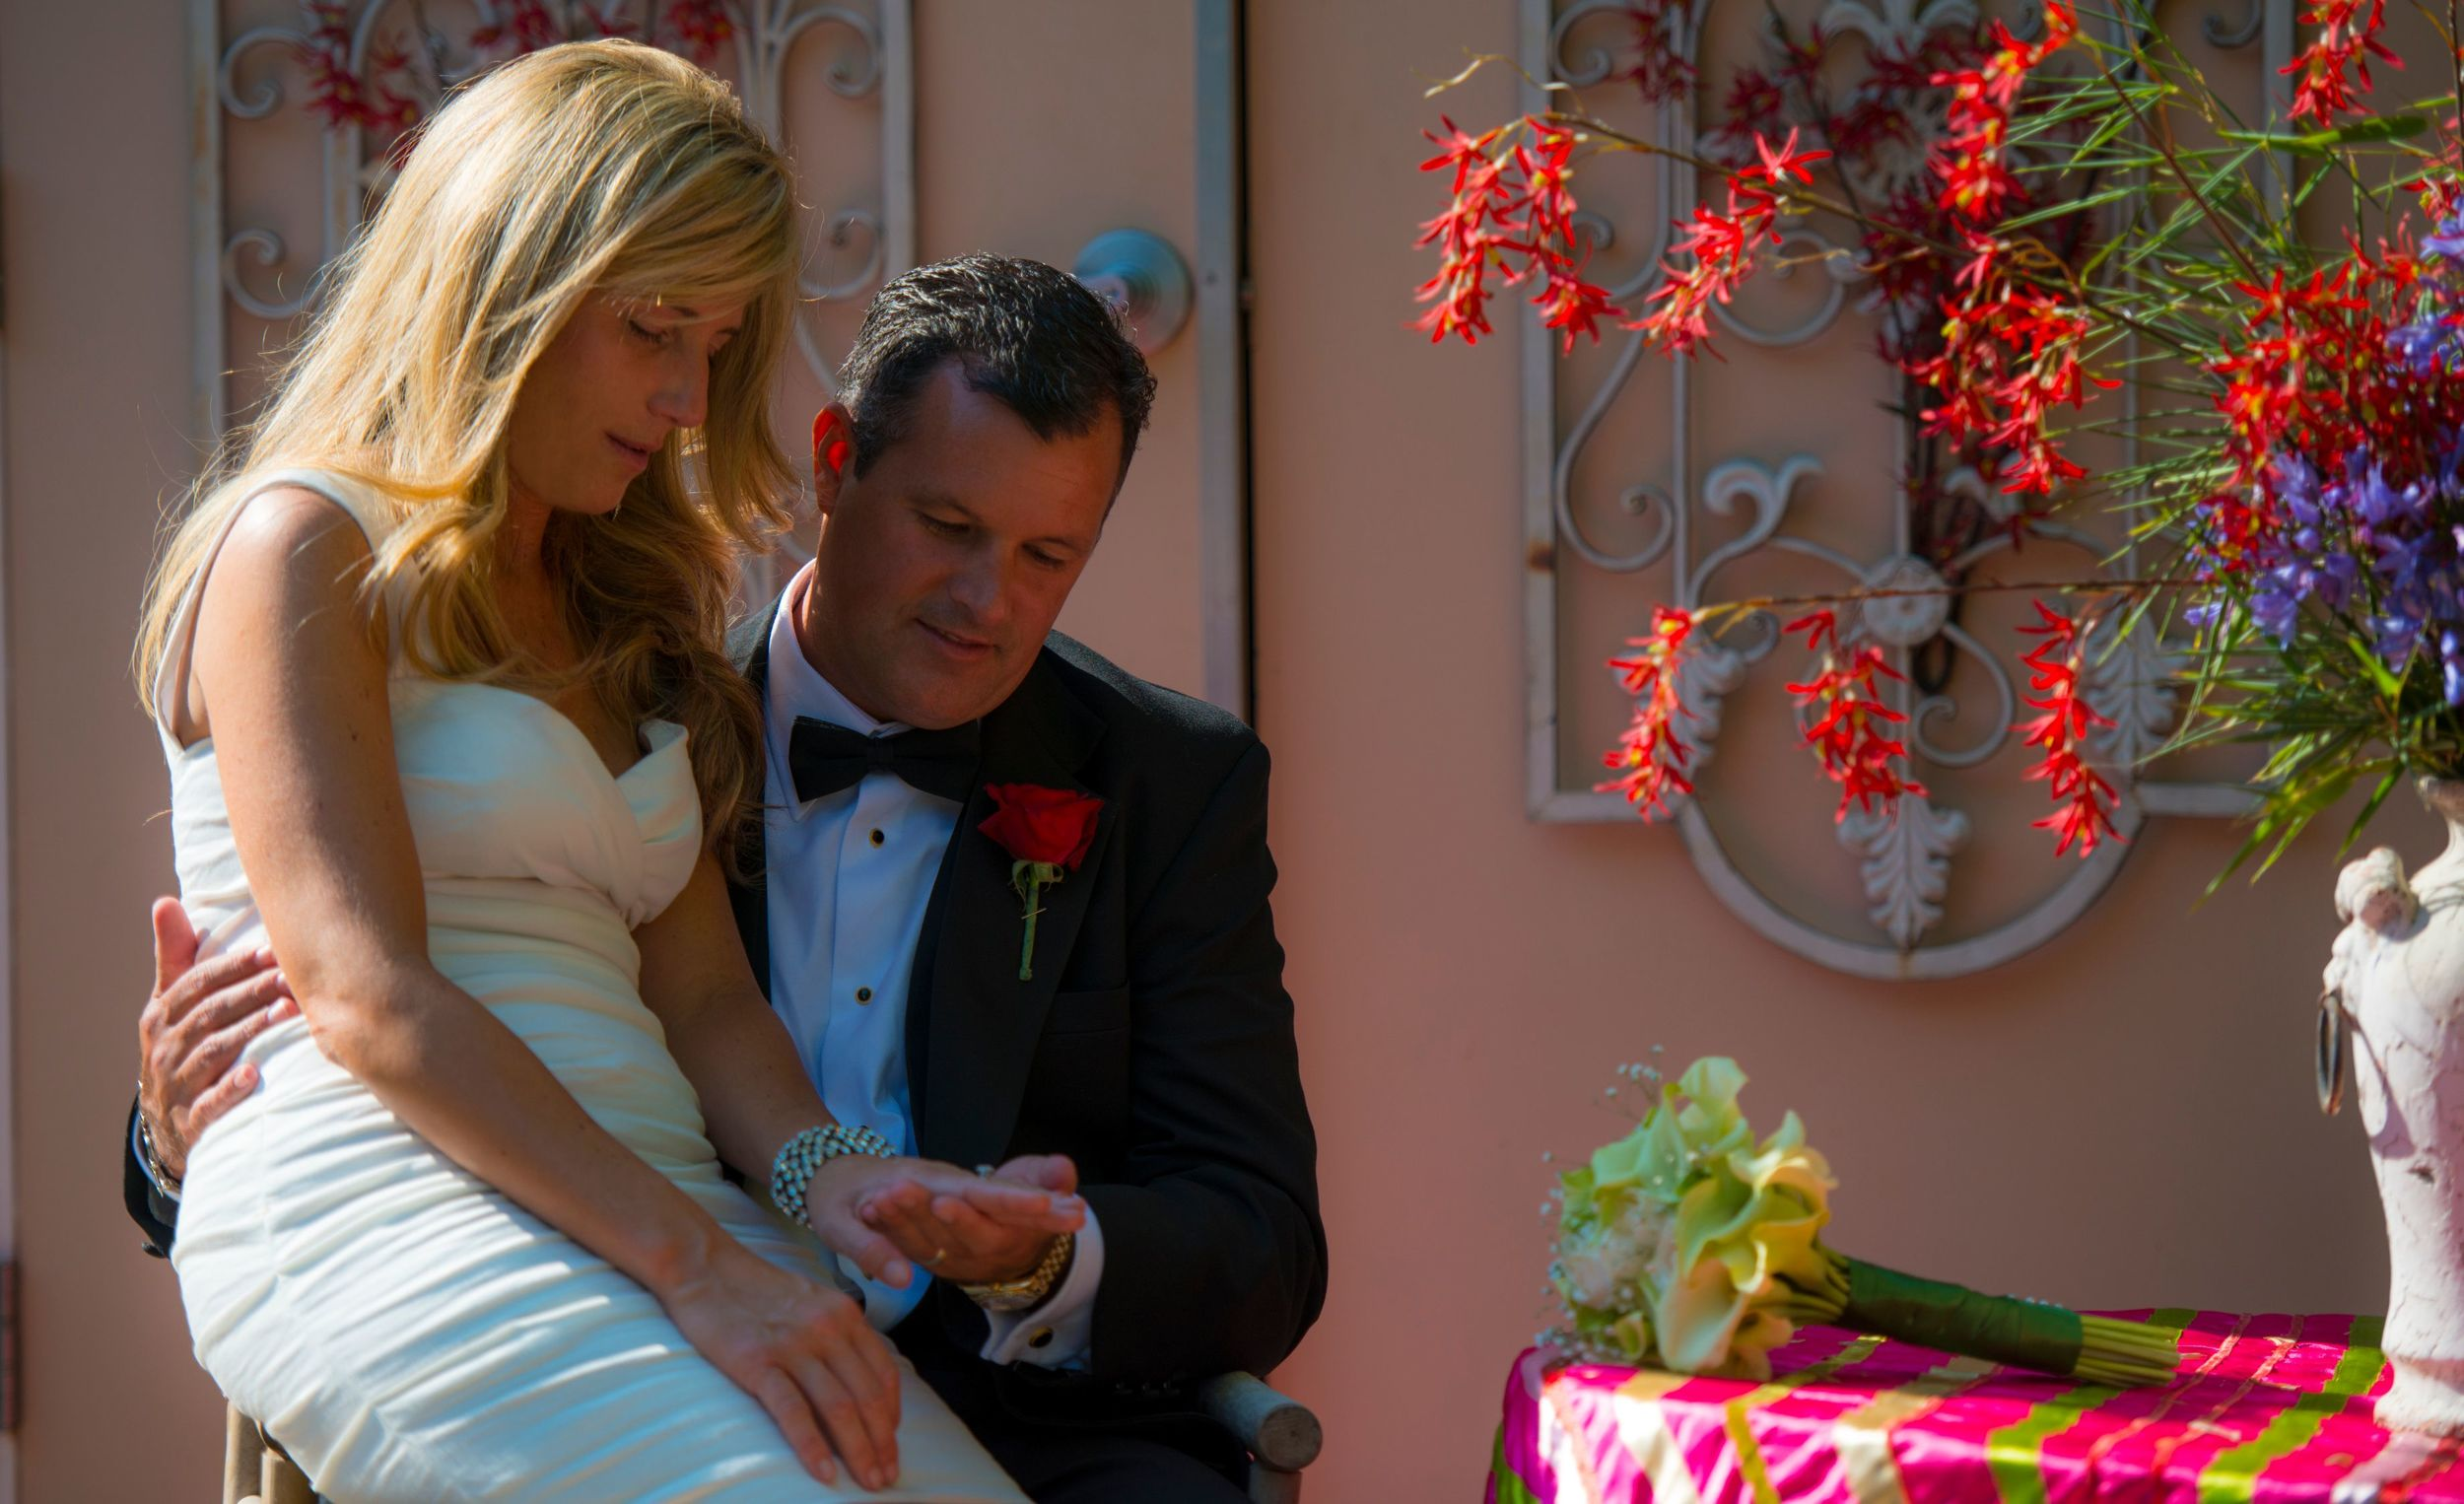 Couple Looking at Ring by Shed.jpg